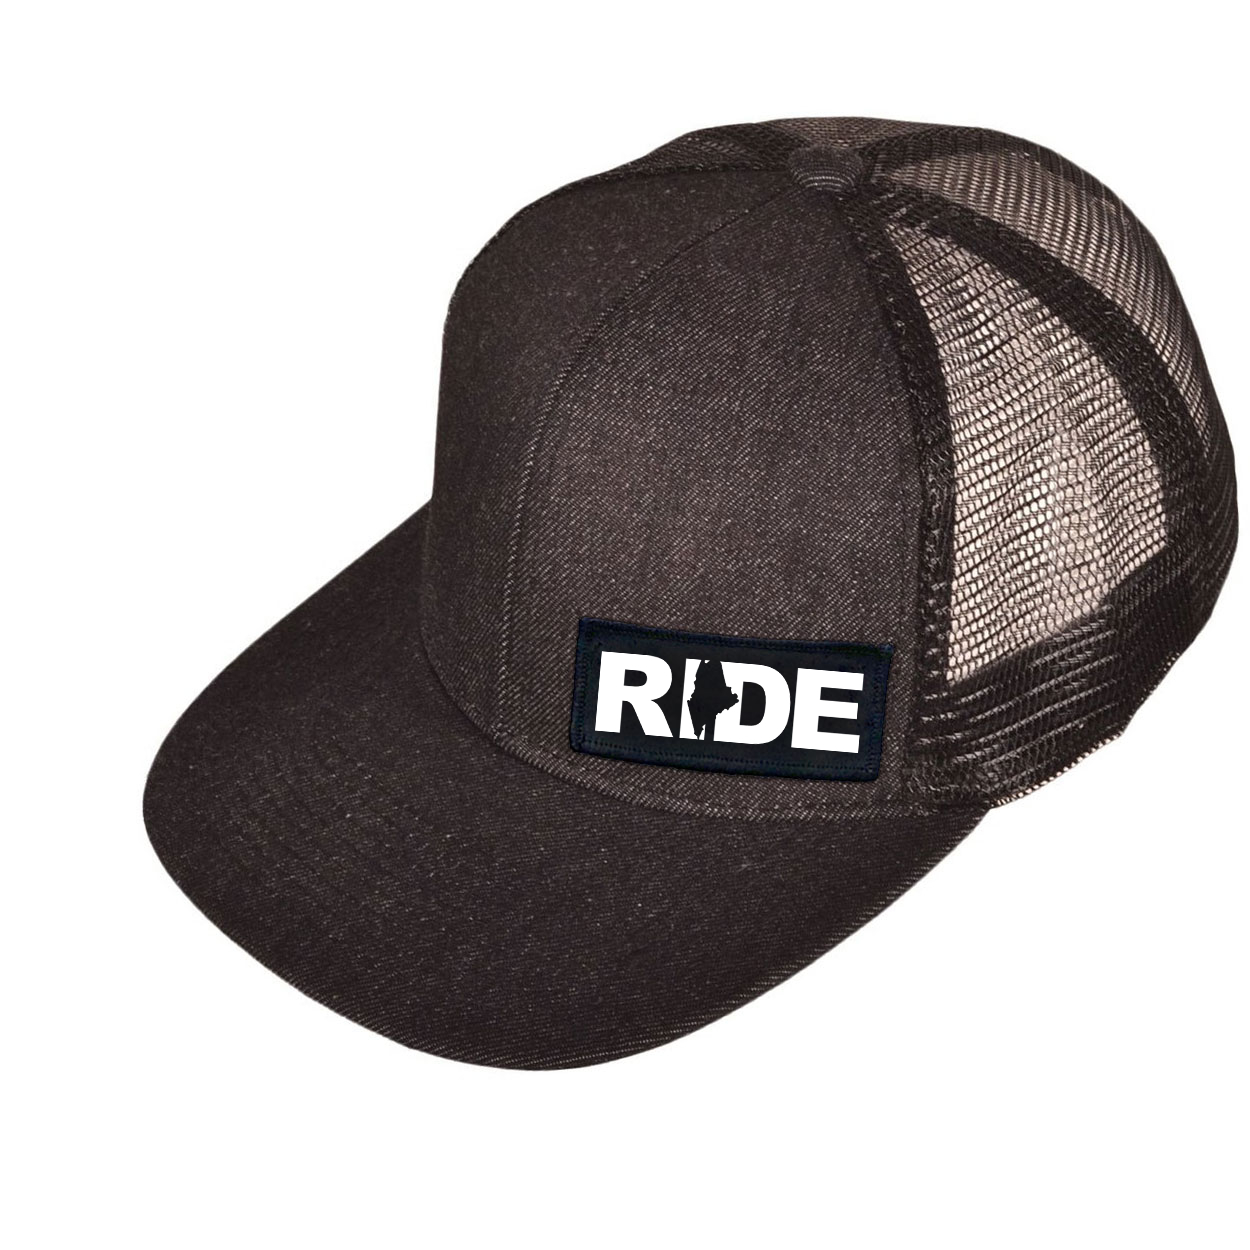 Ride Maine Night Out Woven Patch Snapback Flat Brim Hat Black Denim (White Logo)